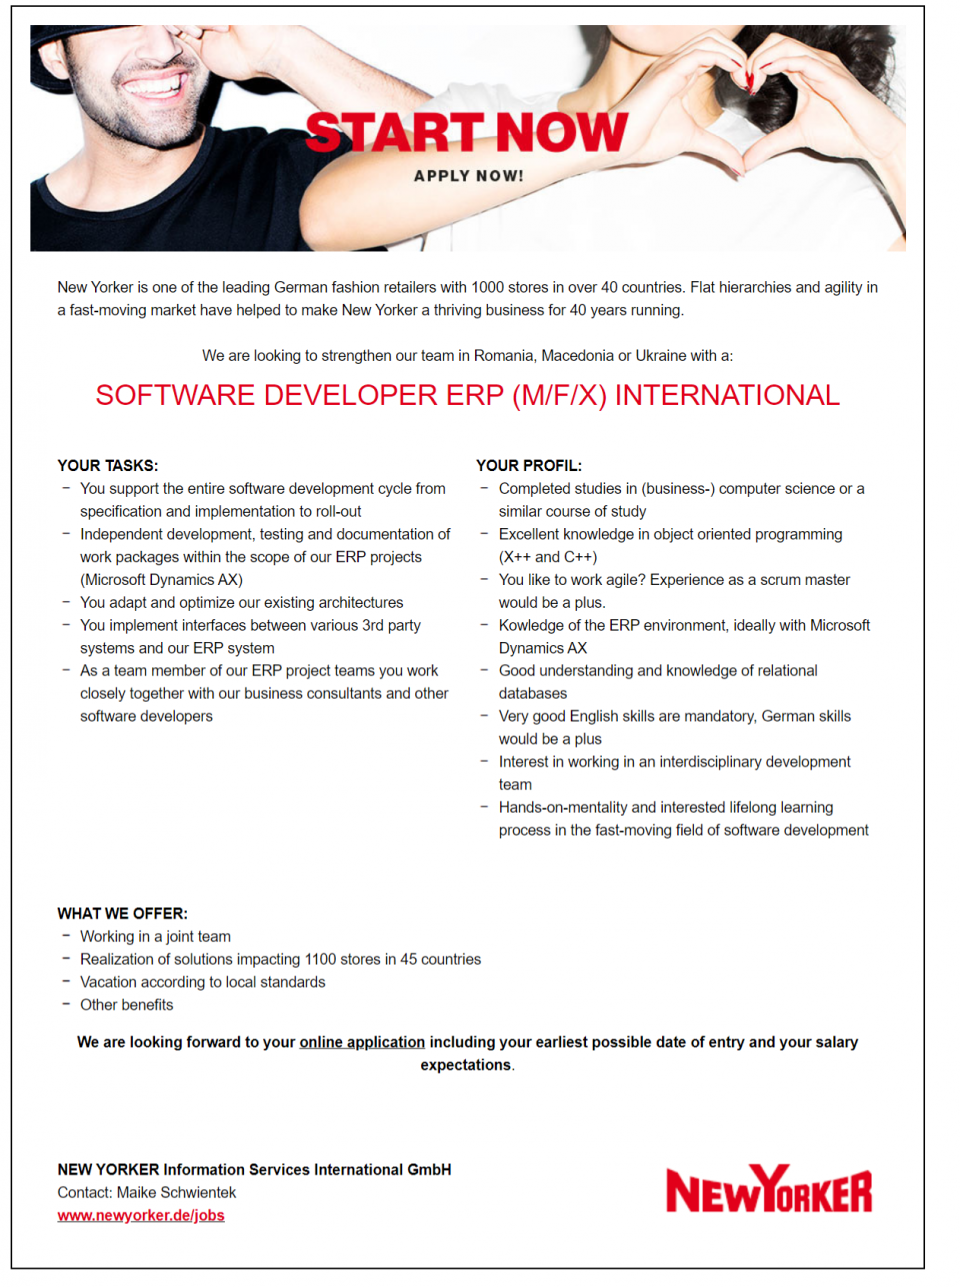 We are looking to strengthen our team in Romania, Macedonia or Ukraine with a:SOFTWARE DEVELOPER ERP (M/F/X) INTERNATIONAL